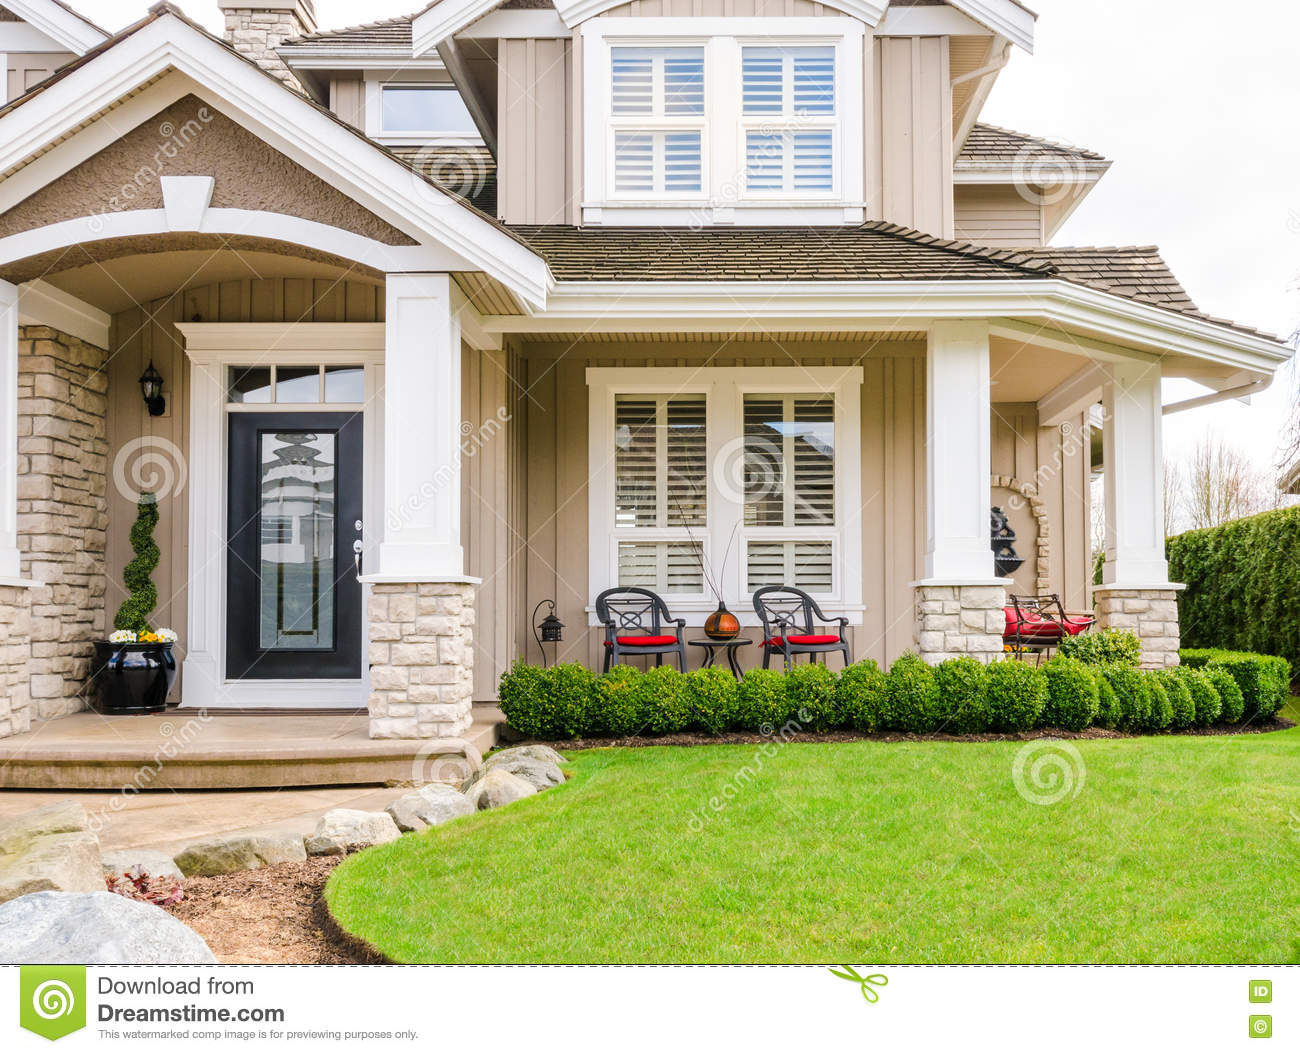 Entrance Of A Luxury House With Beautiful Landscaping On A Bright, Sunny  Day. Home Exterior Design.